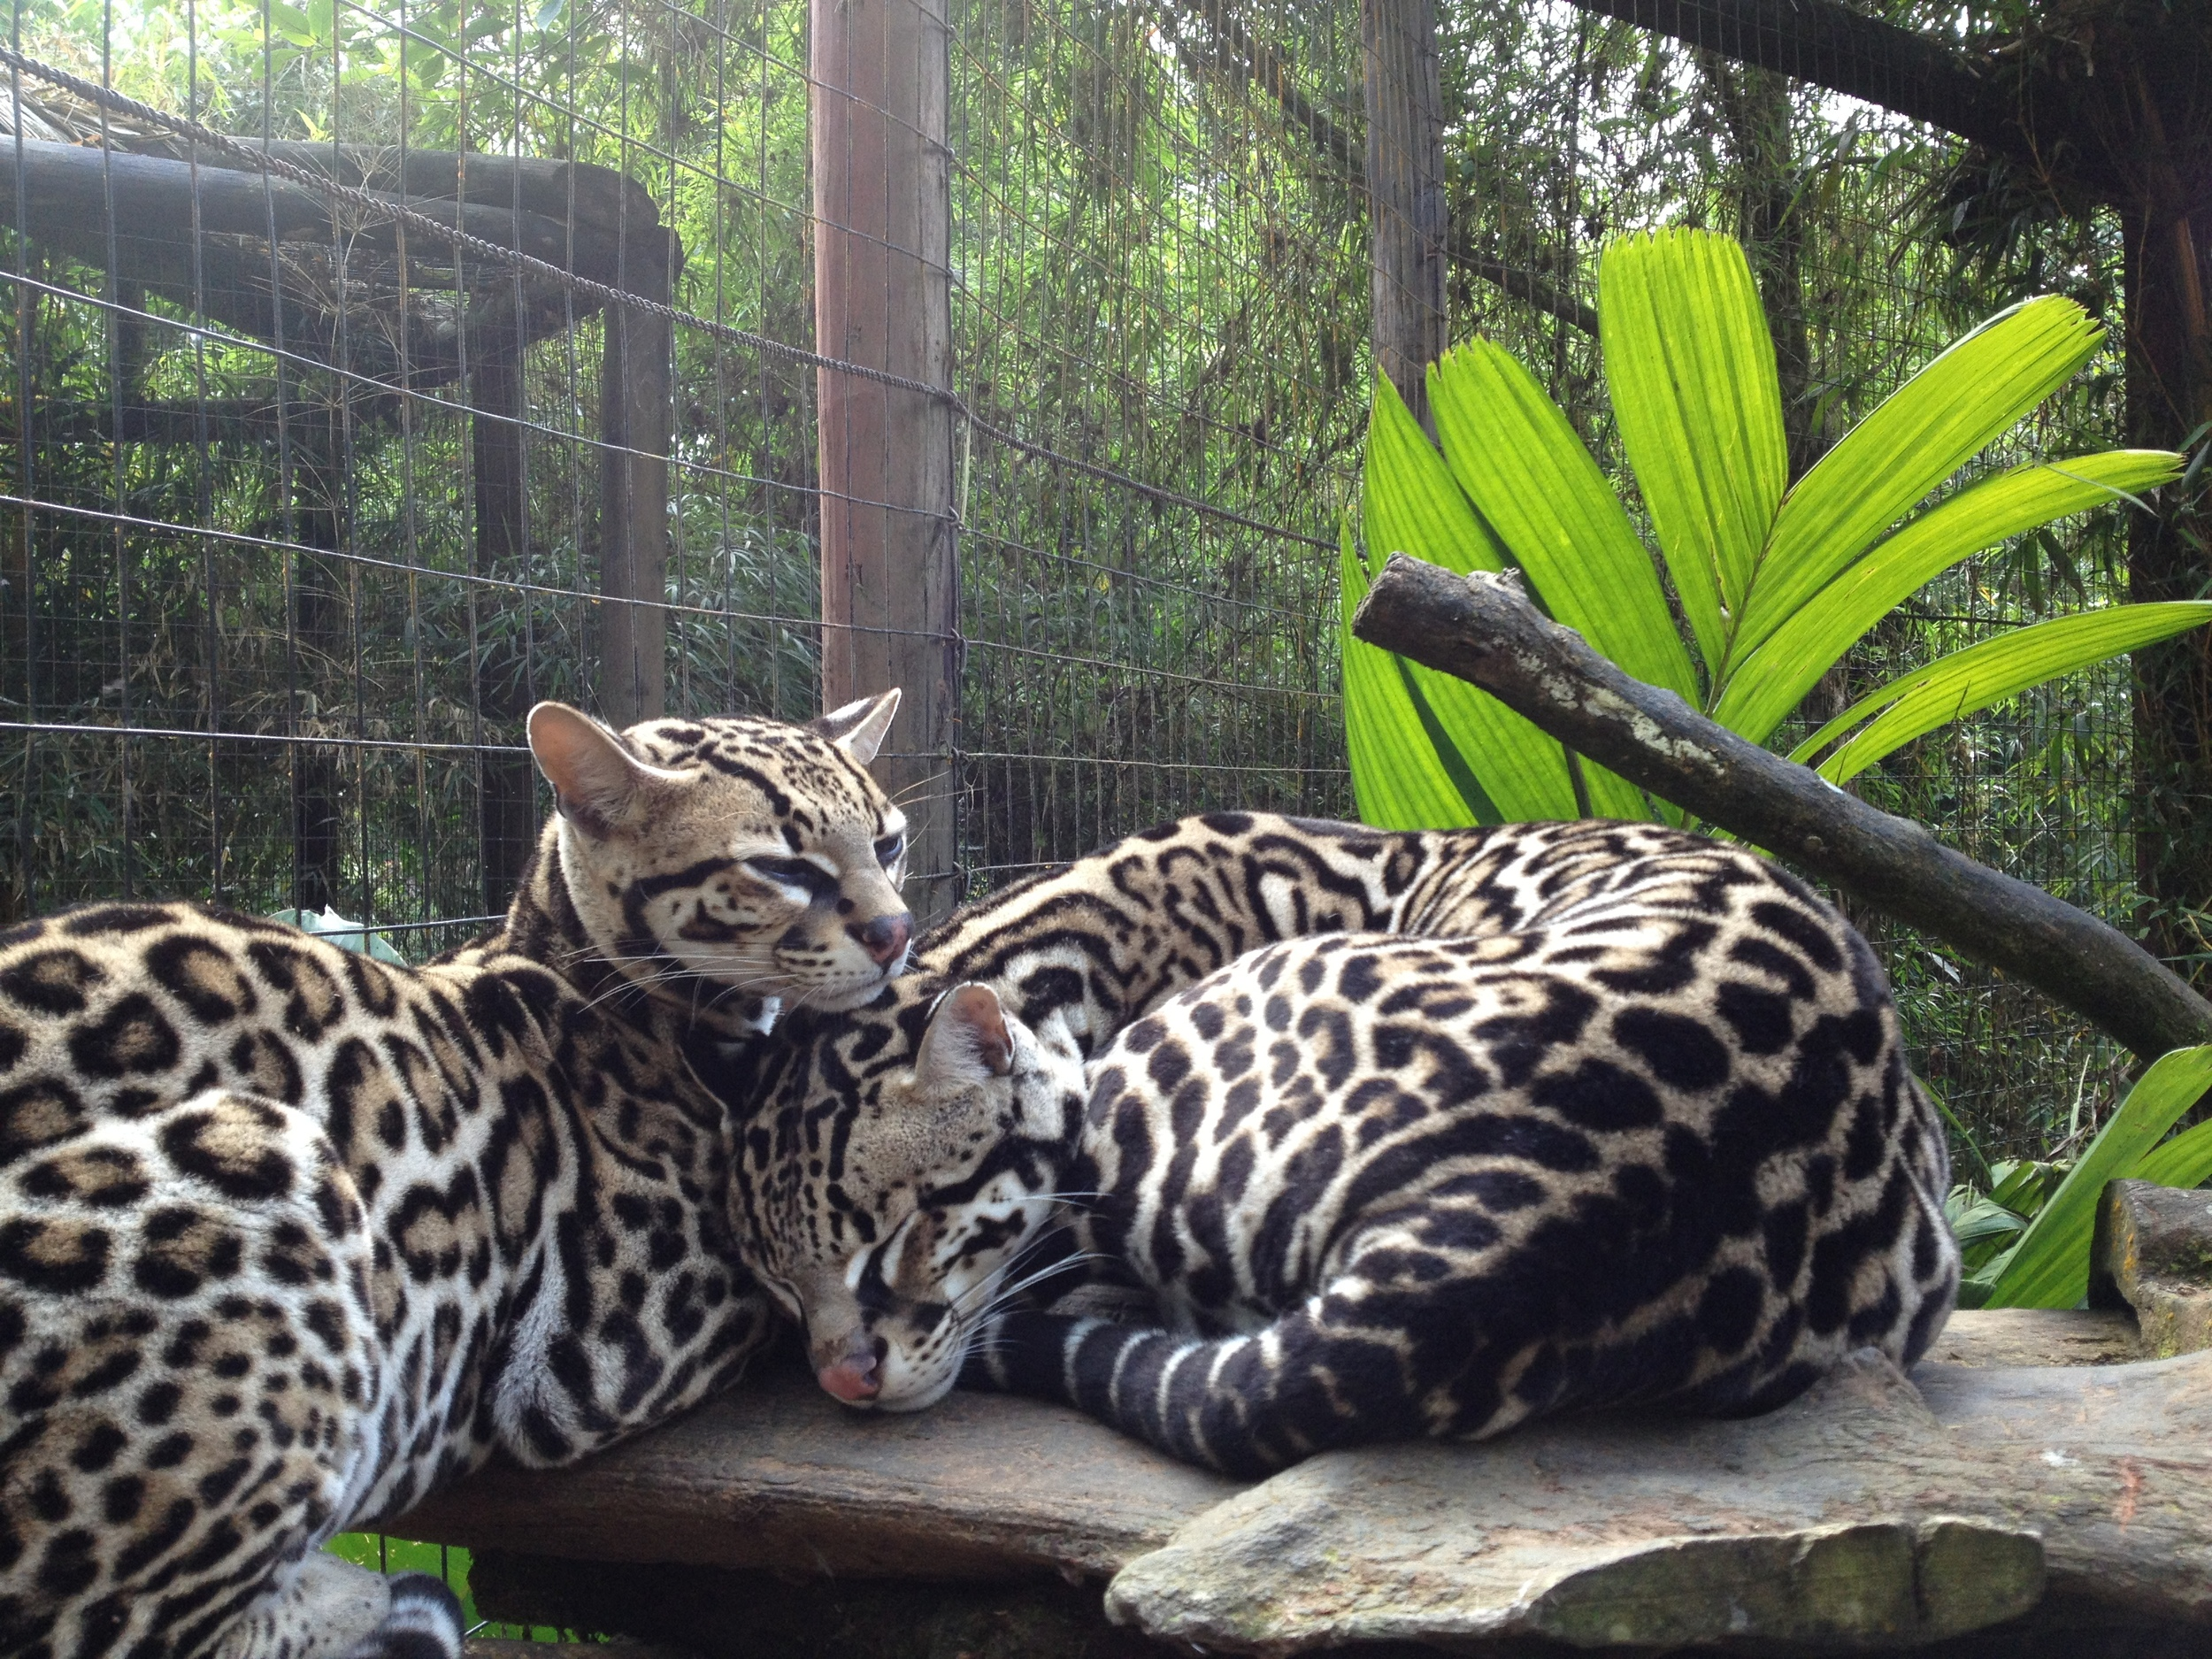 Luci Butler with Ocelots at La Paz Waterfall Gardens Costa Rica